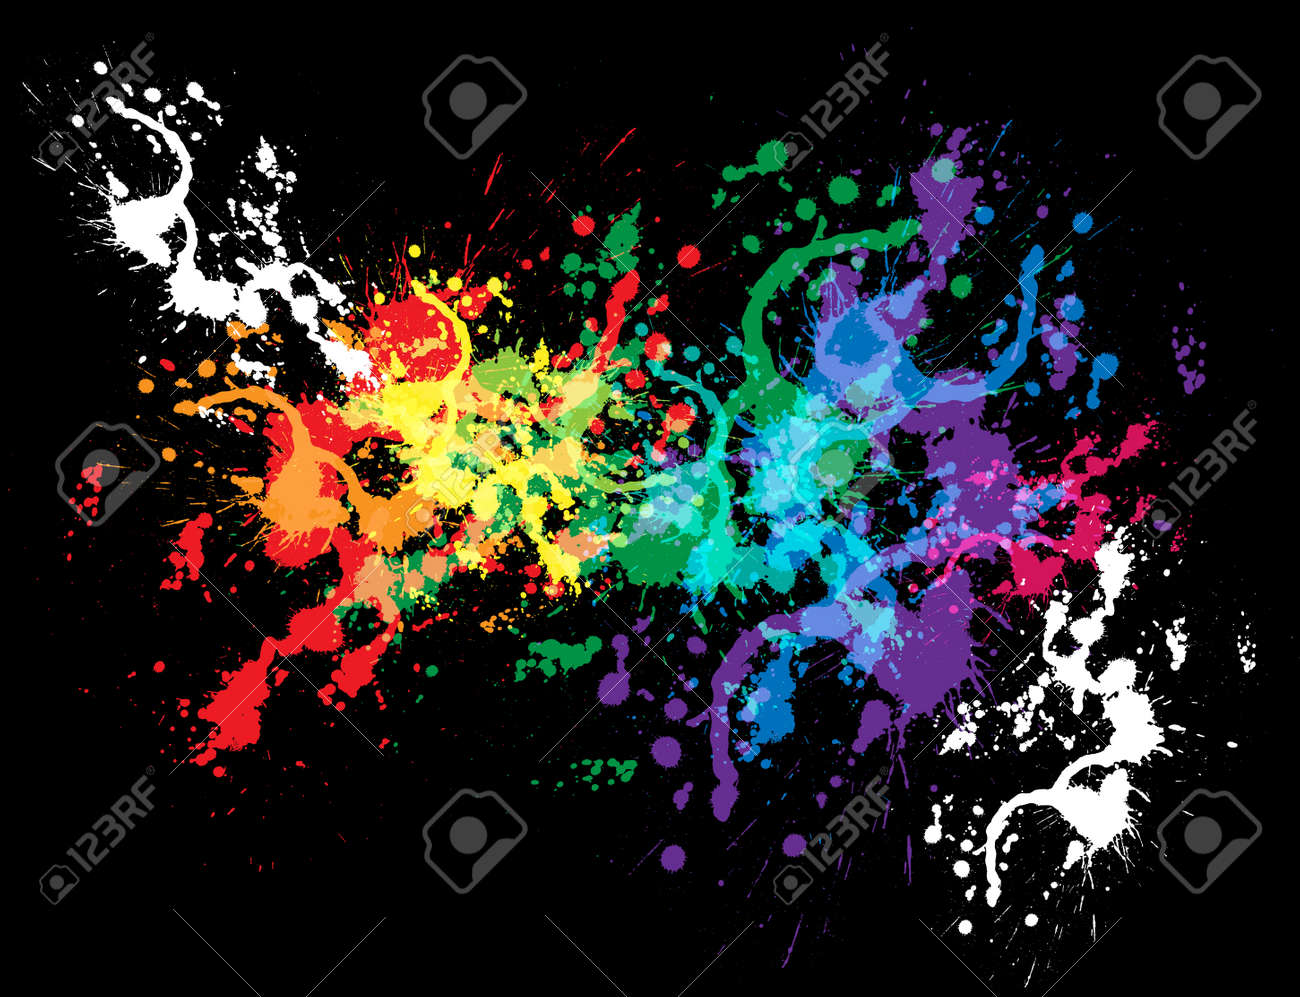 Colourful bright ink splat design with a black background Stock Vector - 13026070